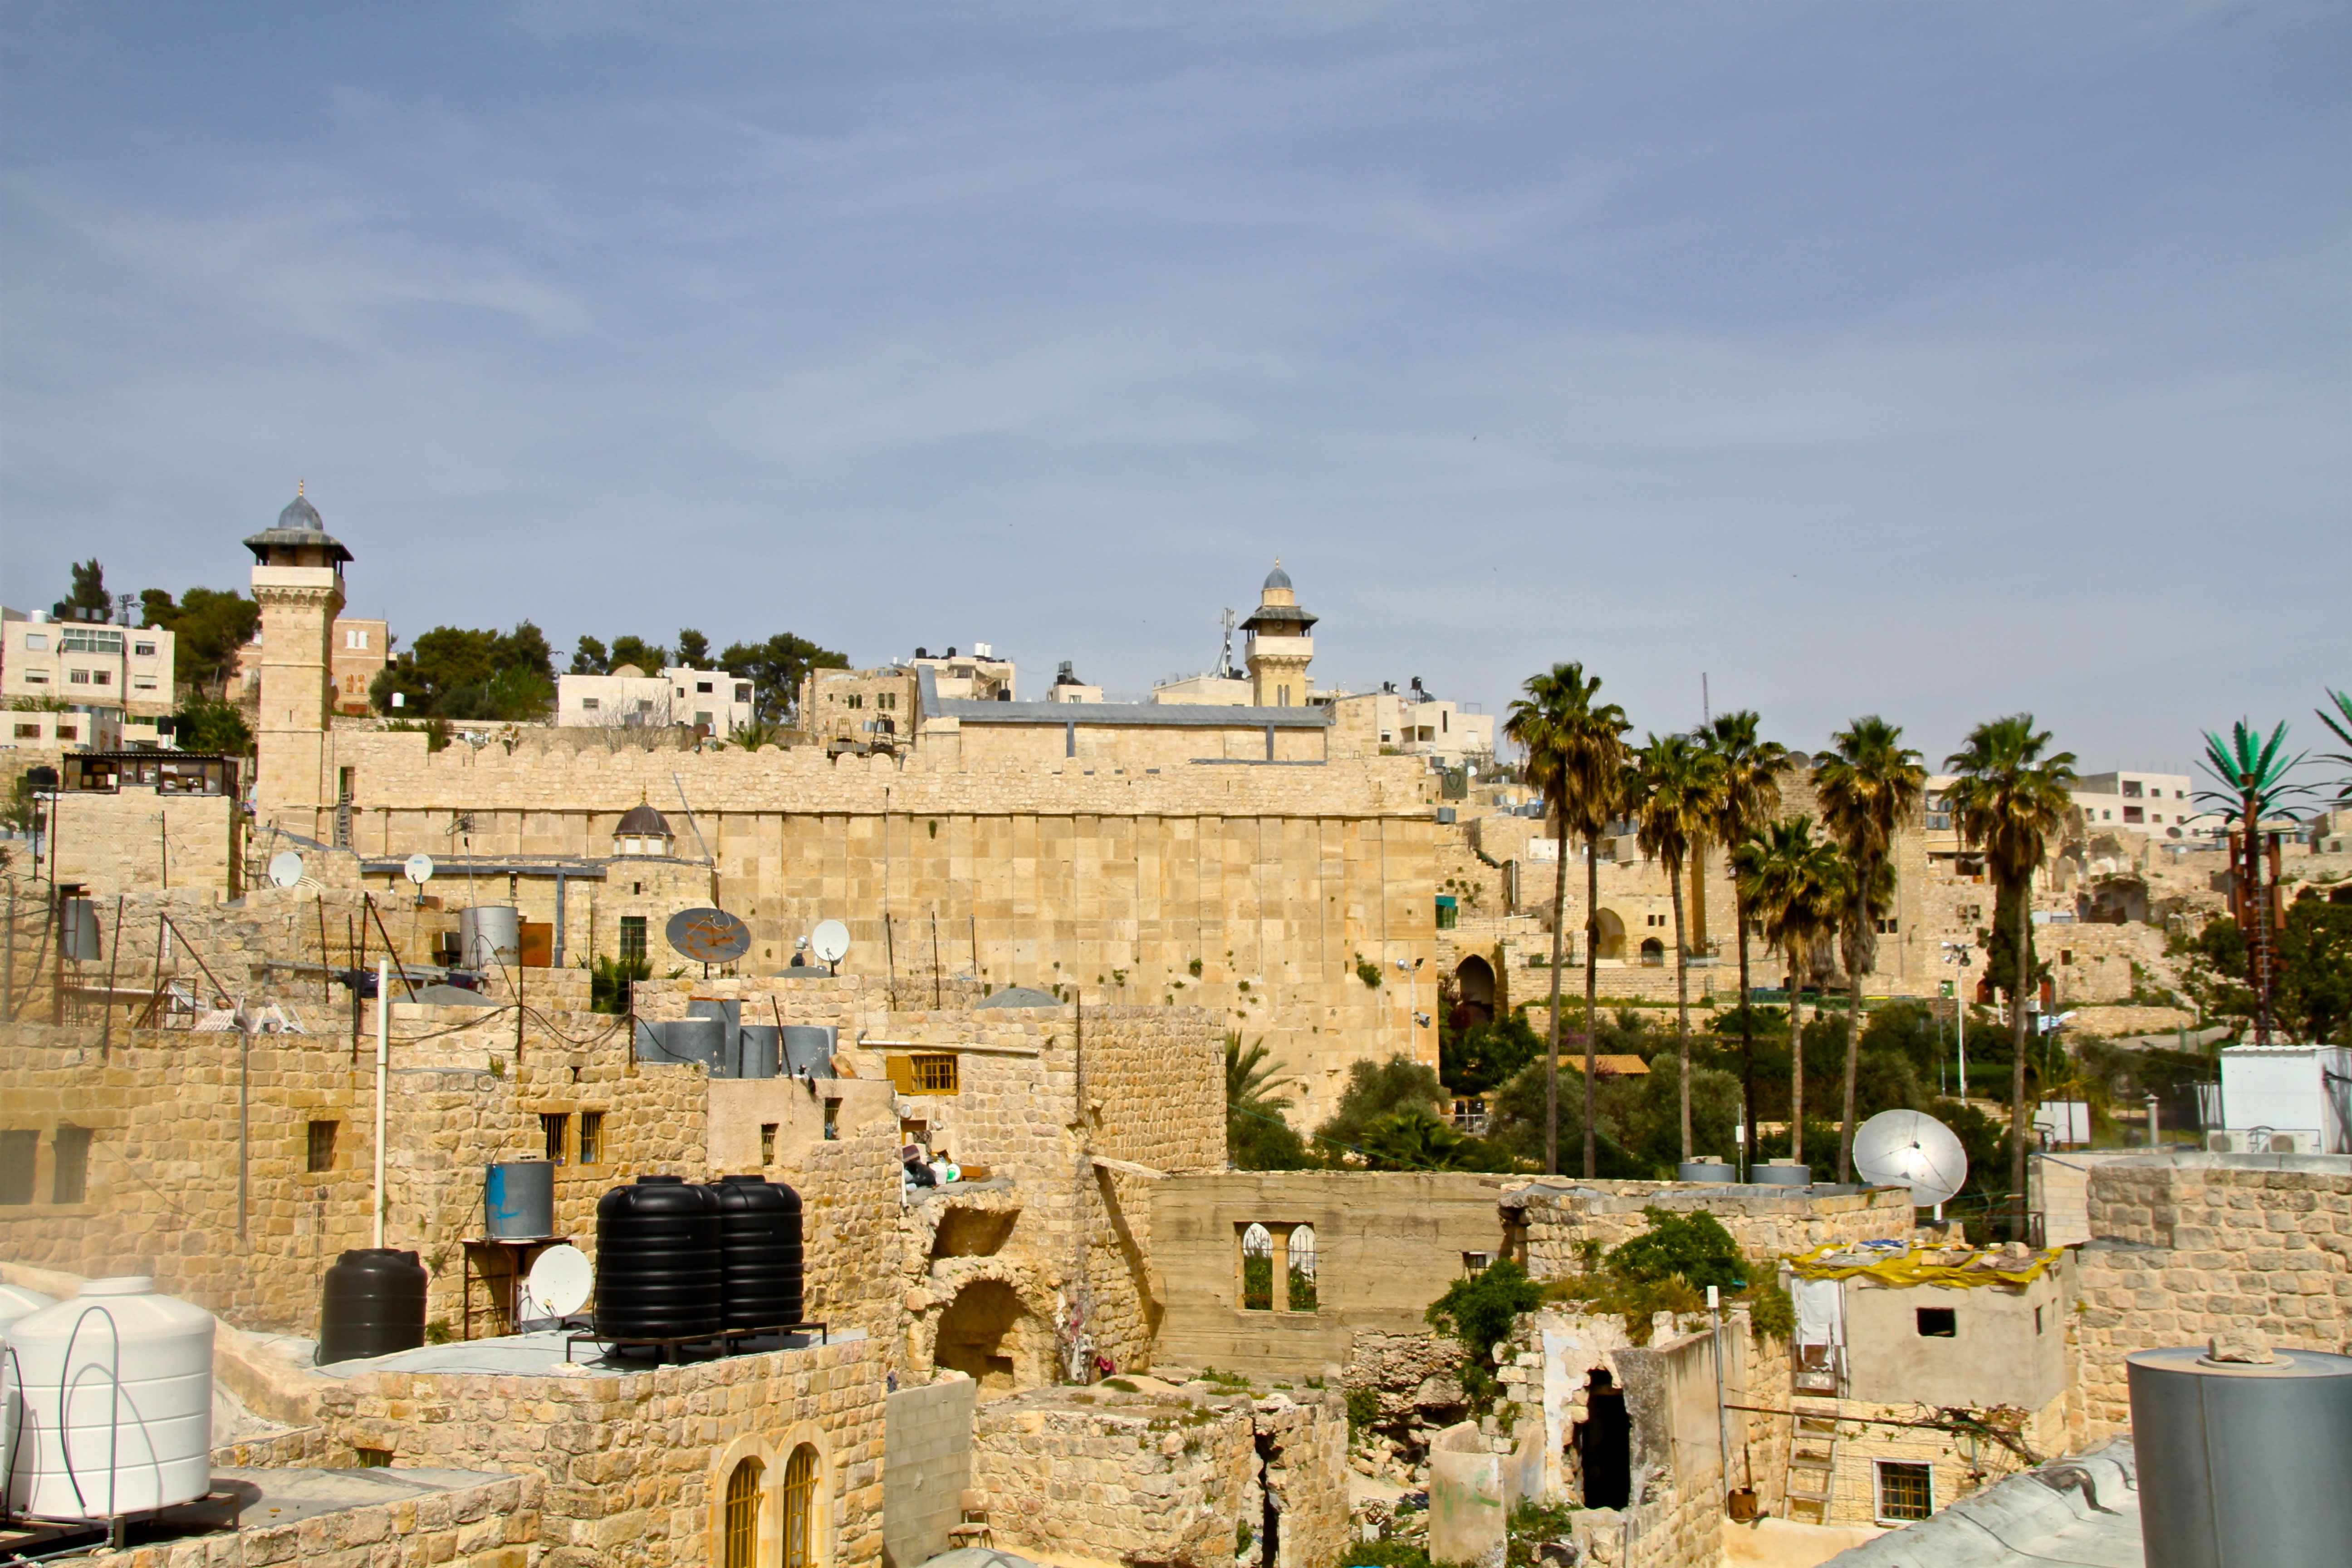 The Tomb of the Patriarchs as seen from the top of one of the two homes (Tovah Lazaroff)